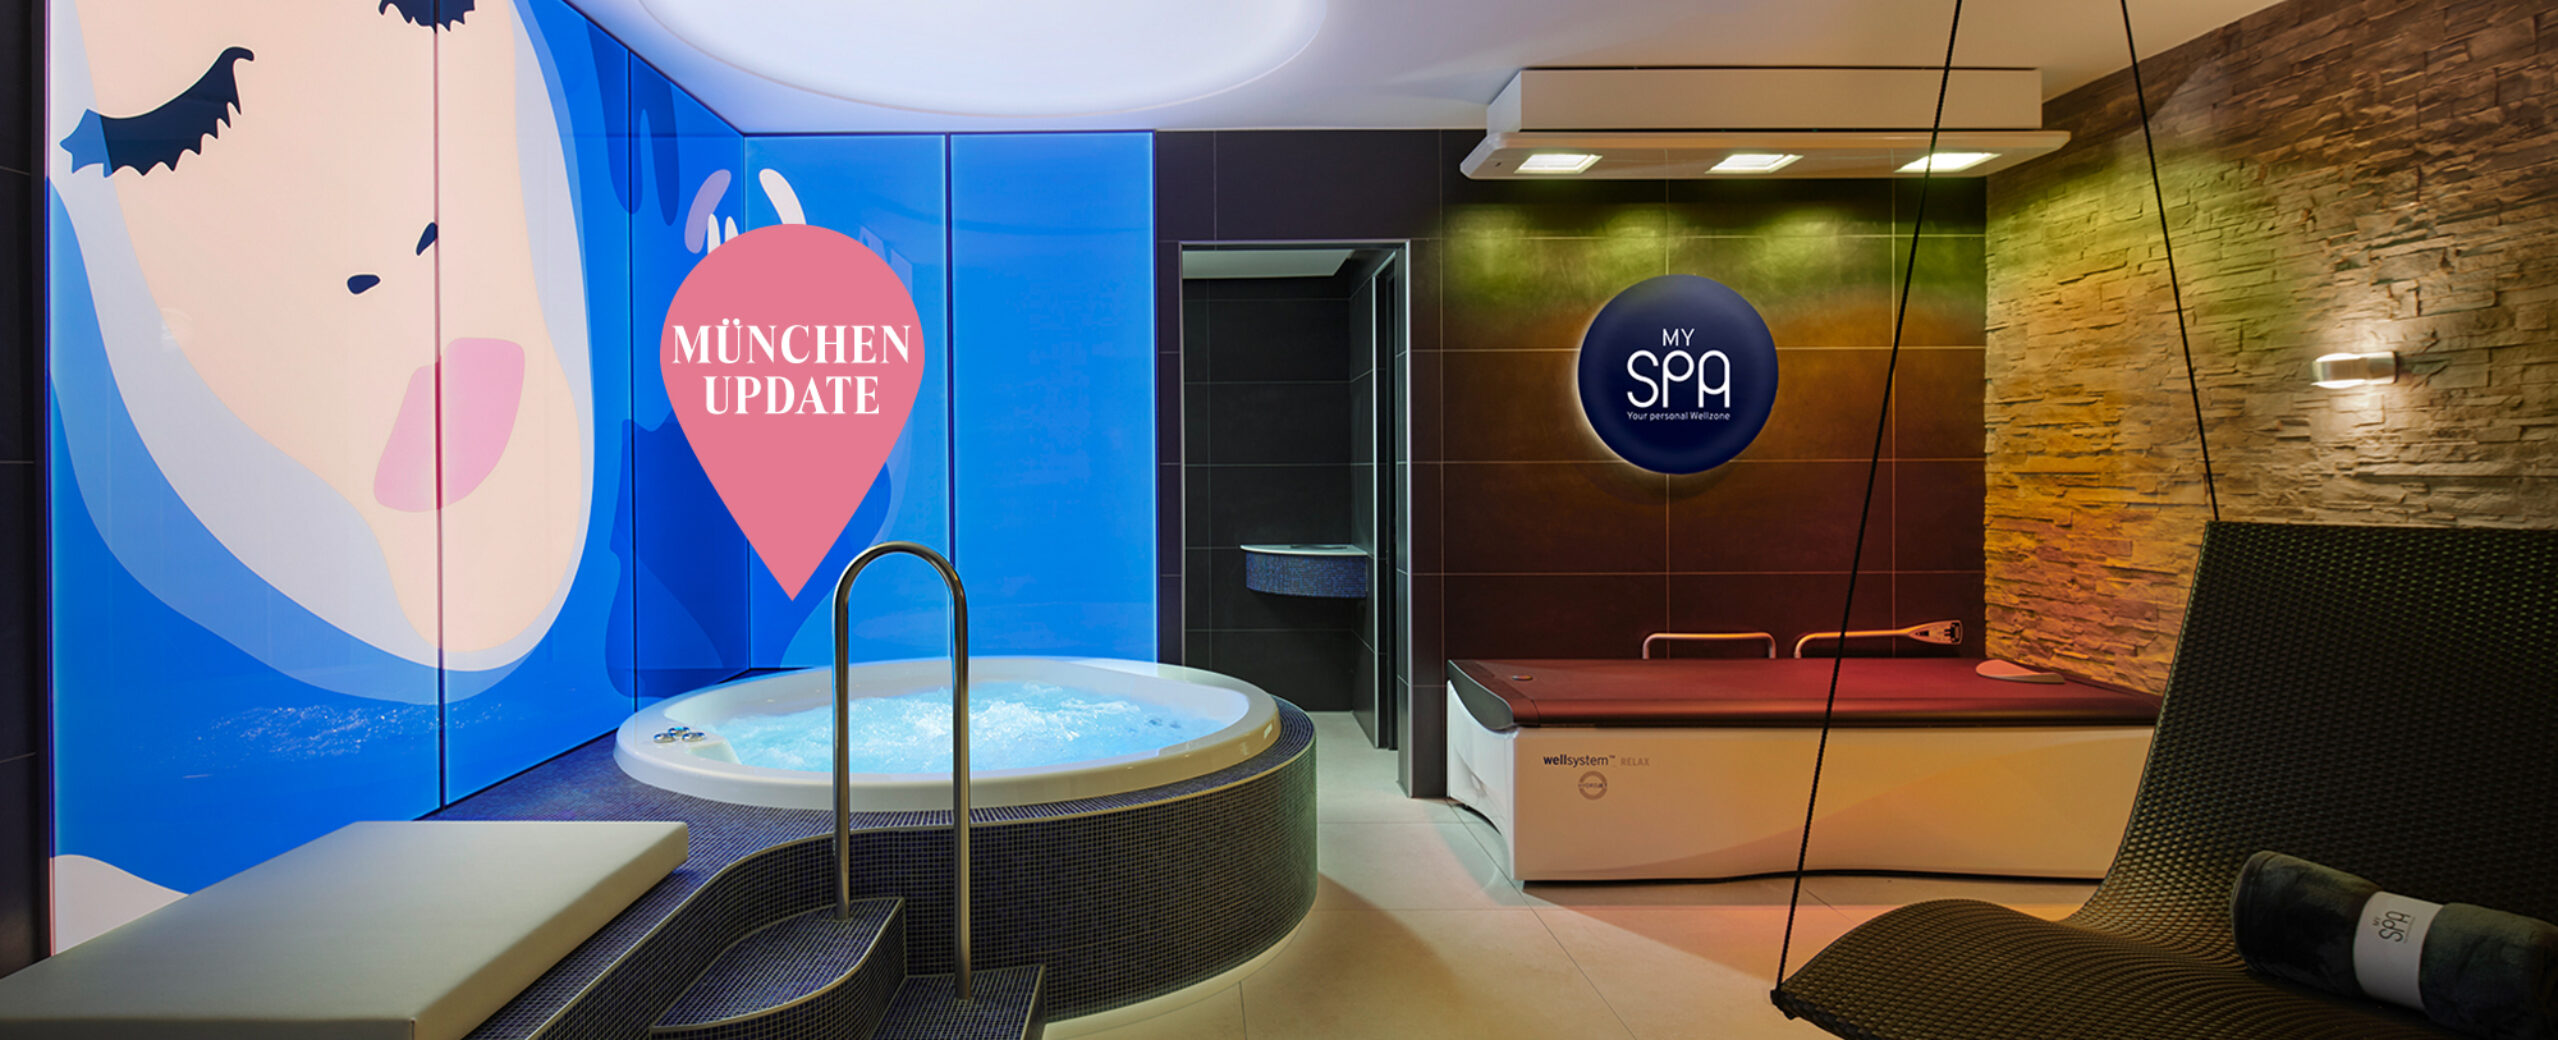 My Spa News Muenchen Update Header